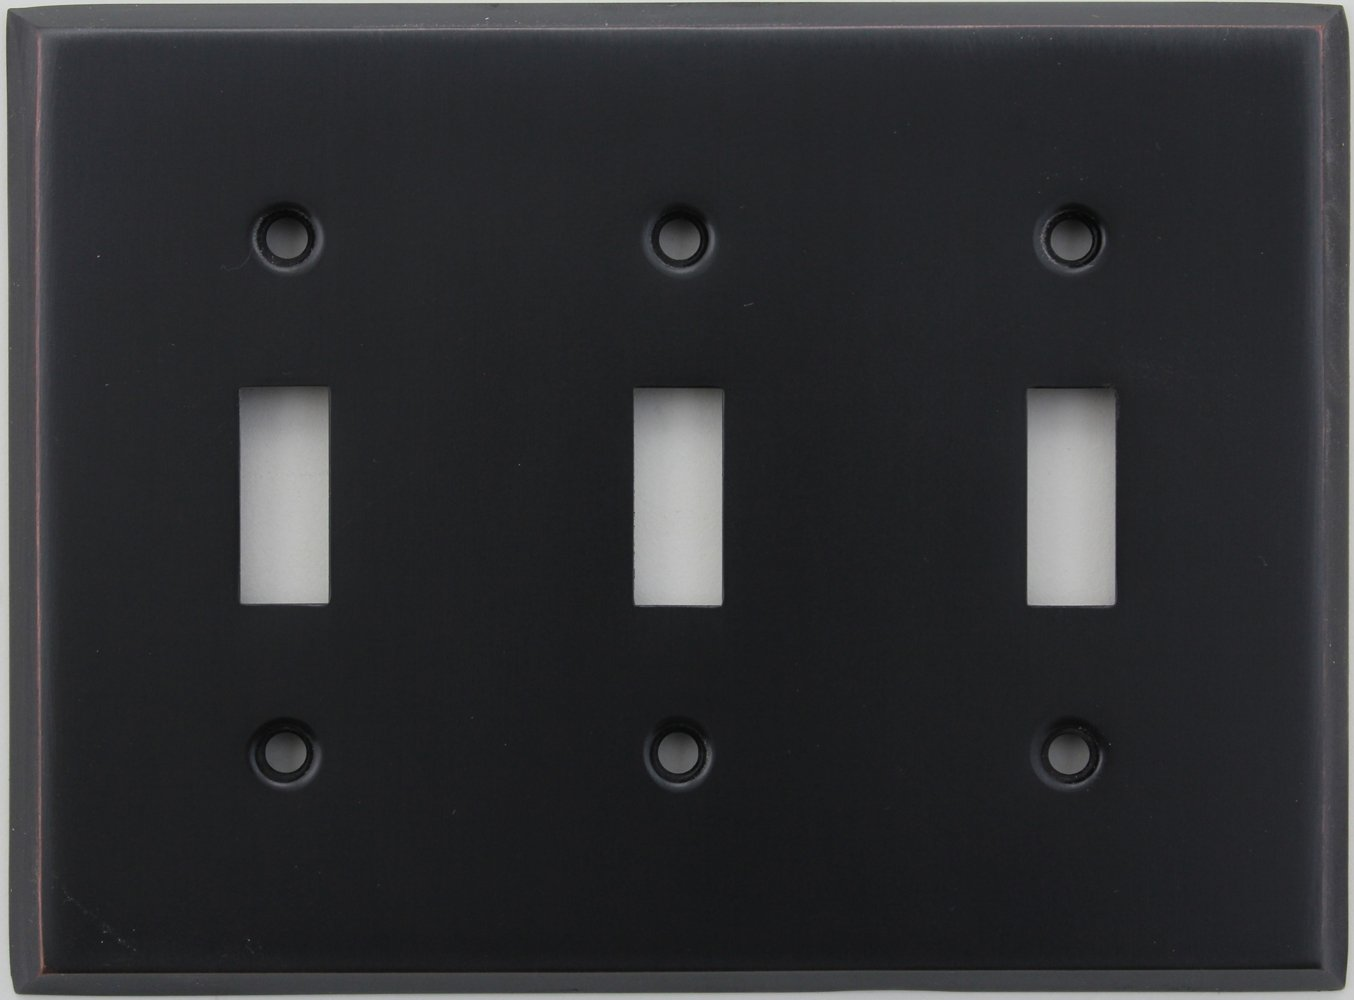 Classic Accents Stamped Steel Oil Rubbed Bronze Three Gang Toggle Light Switch Wall Plate